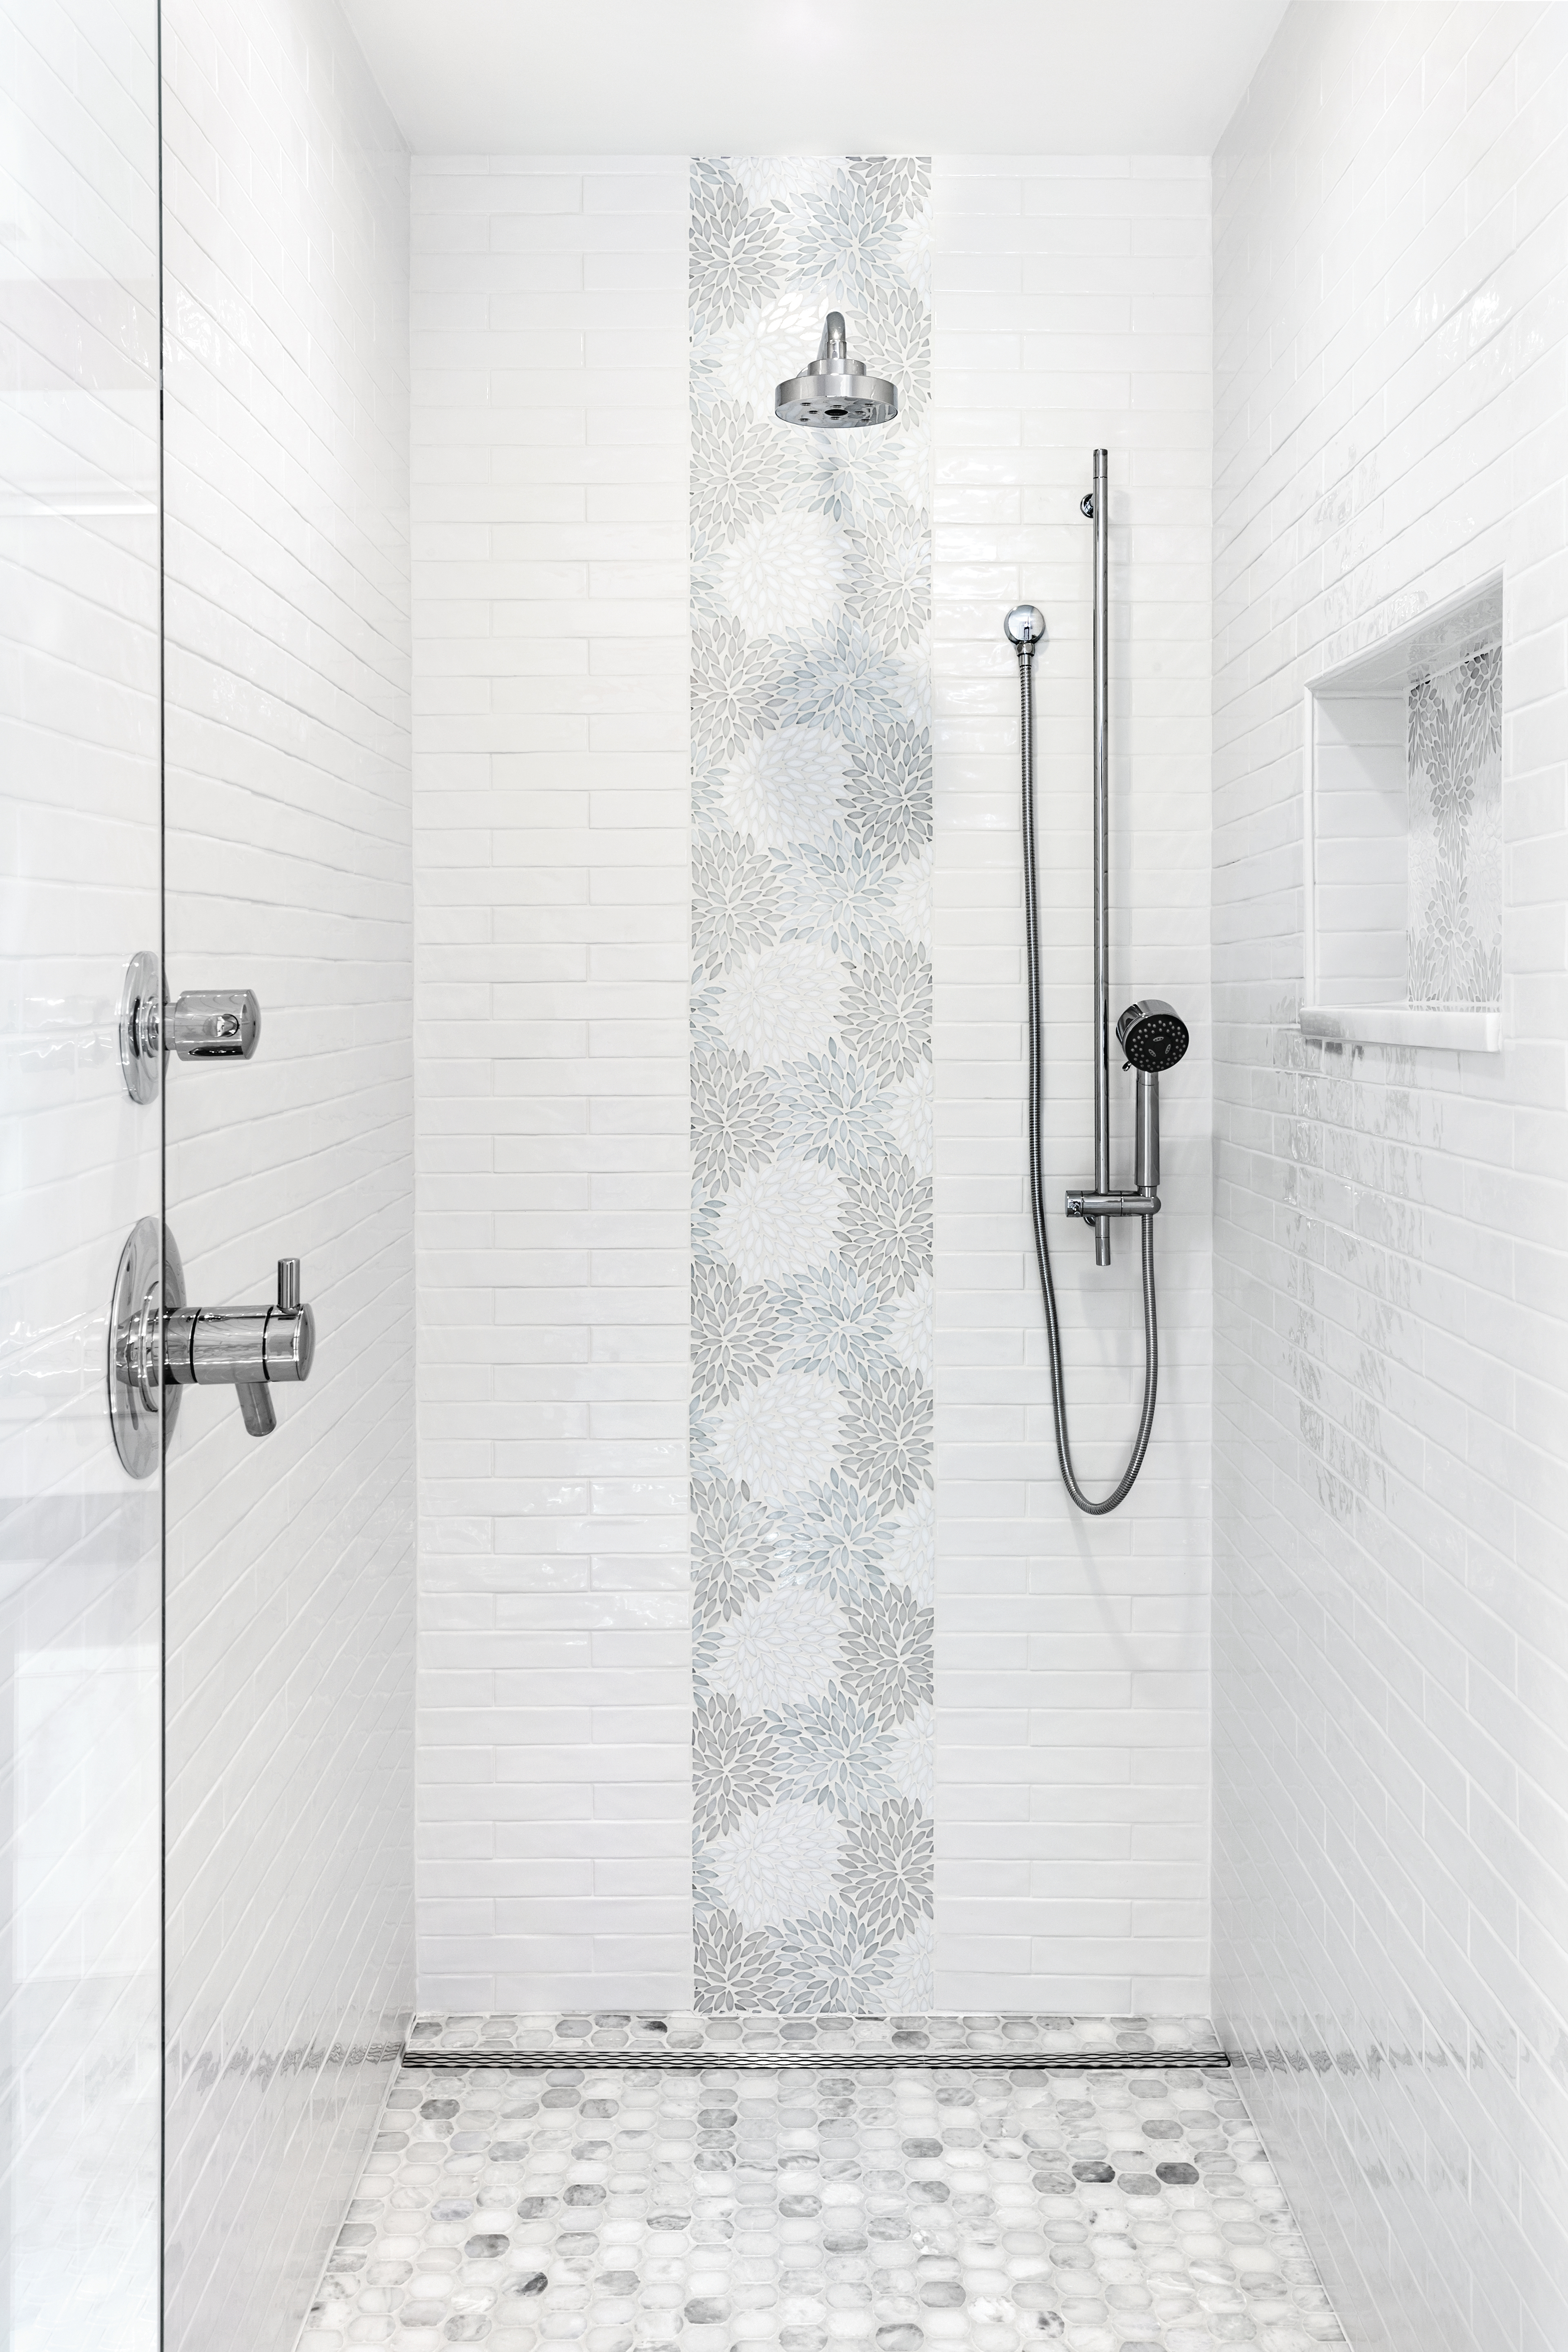 Quickdrain Proline Stainless Steel Linear Shower Drain Ideal For Curbed Or Curbless Showers Business Wire